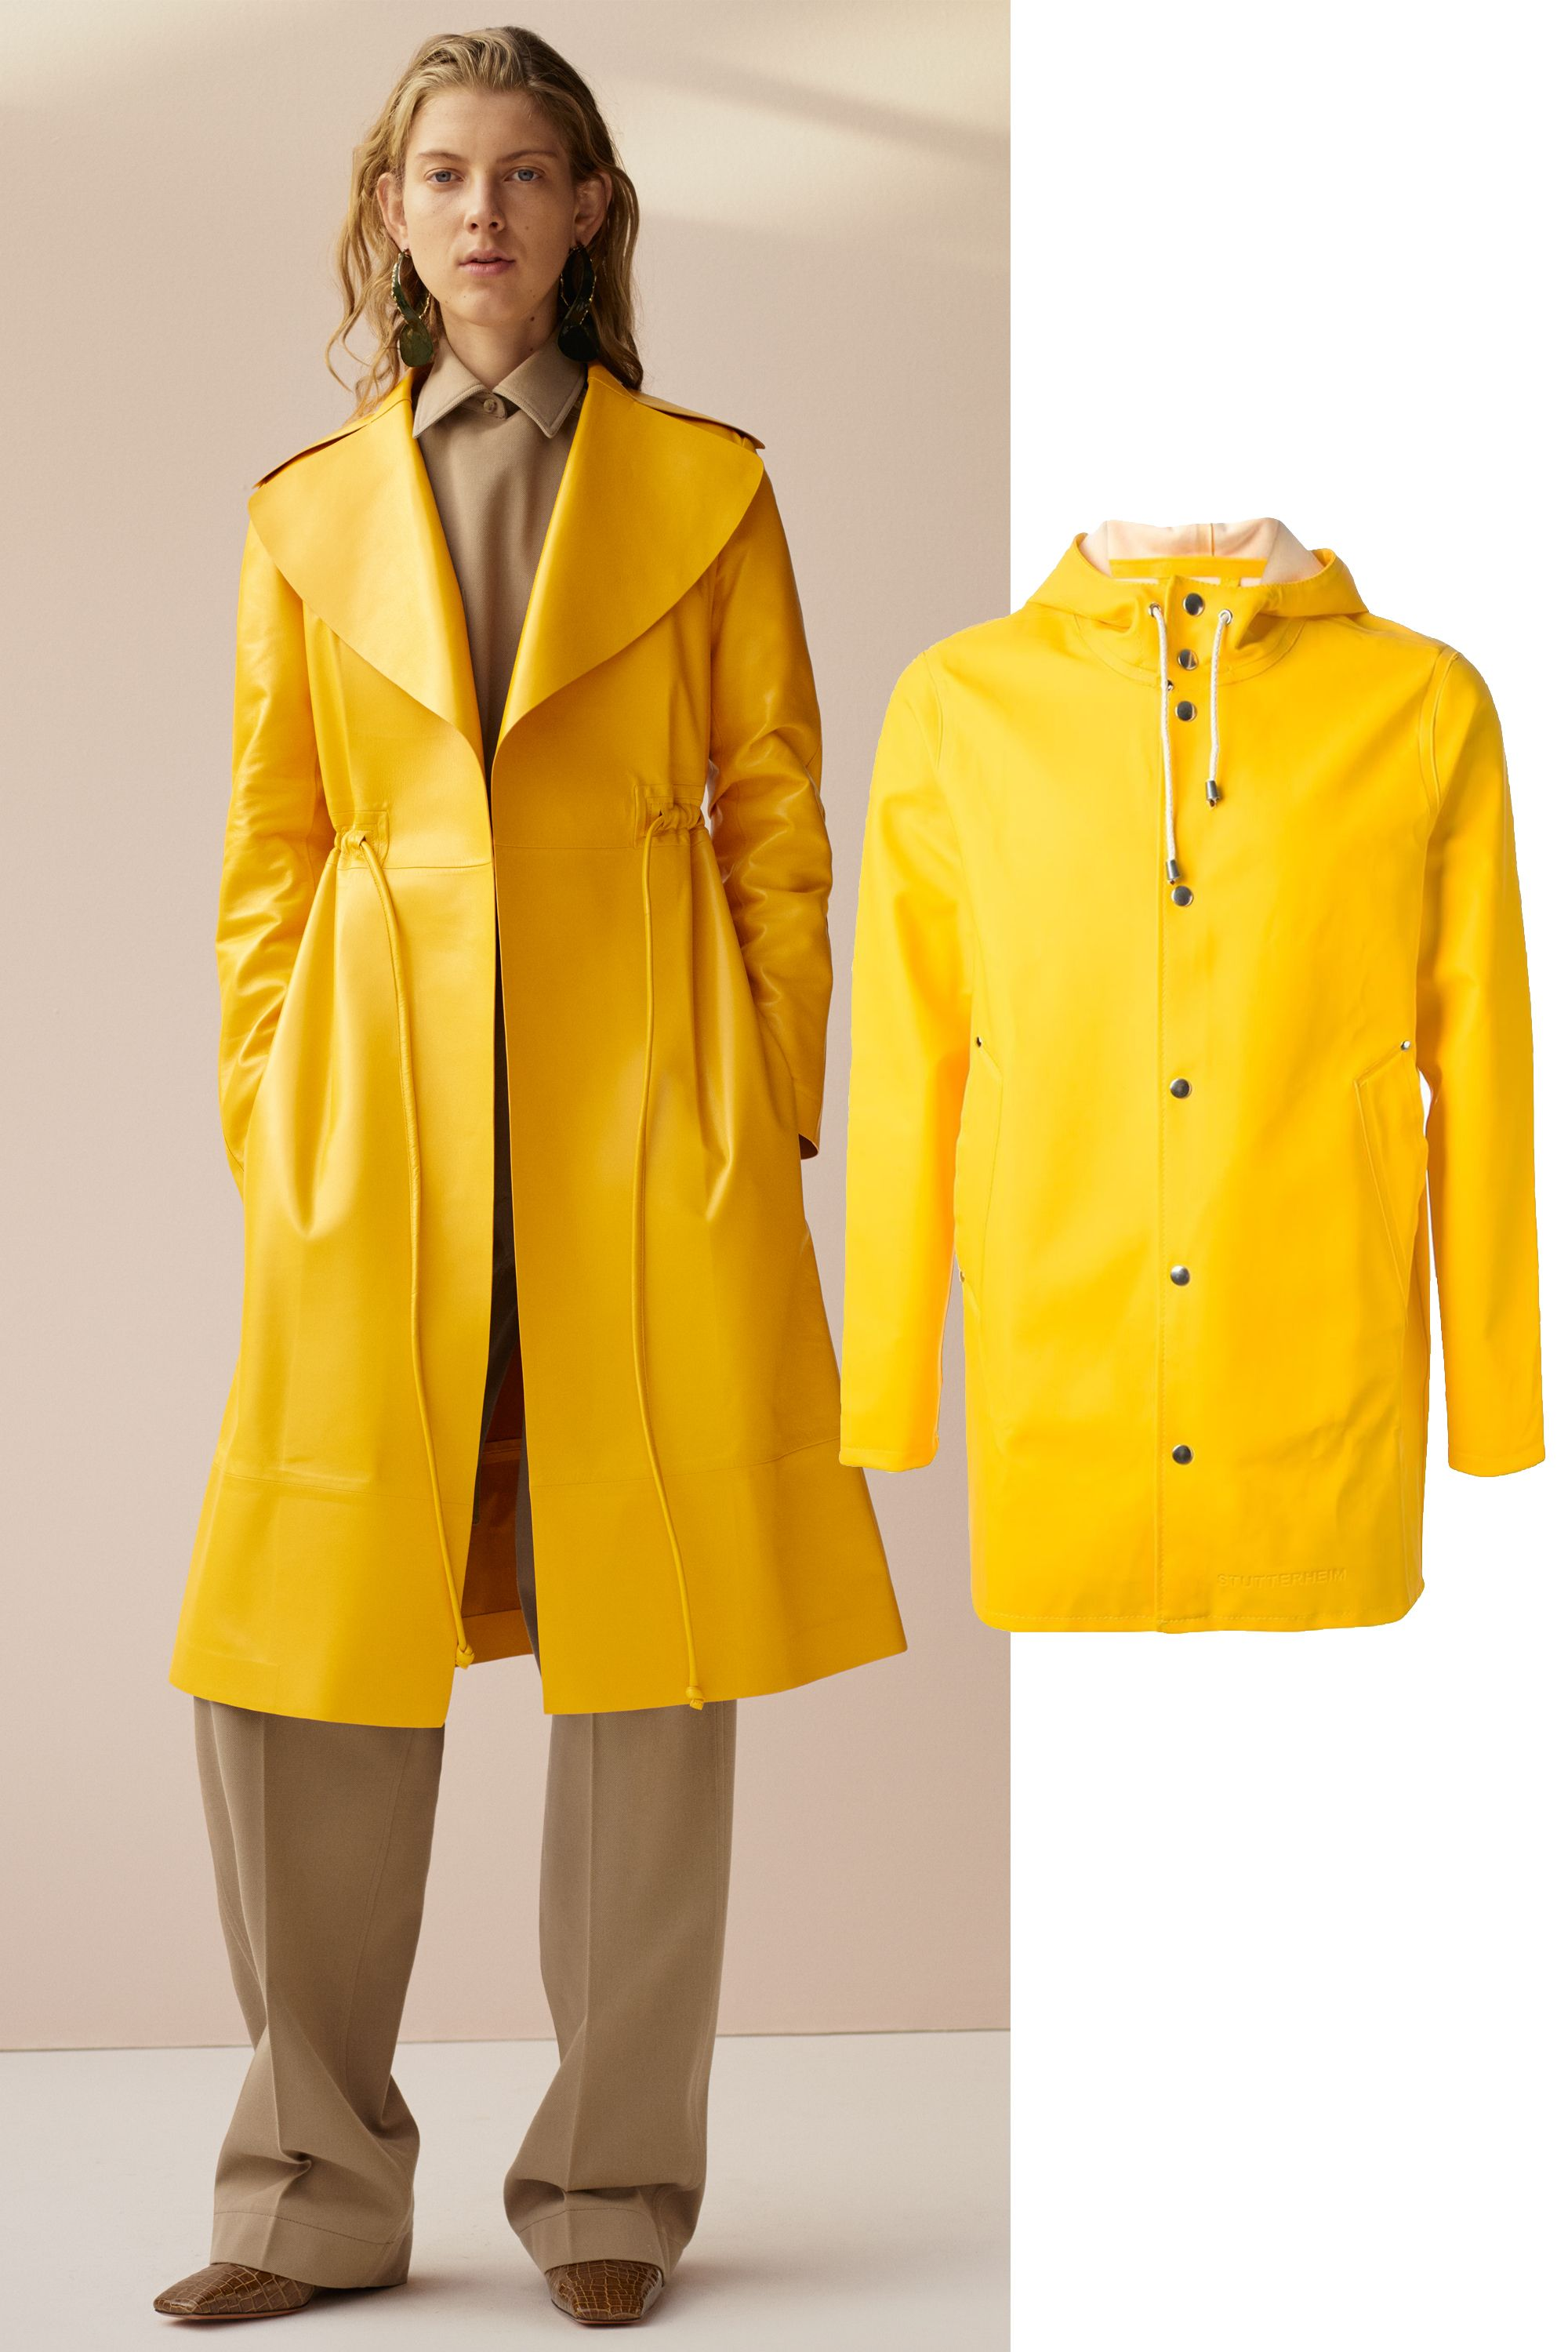 "&lt;p&gt;Paddington Bear was the chicest around (especially if Pheobe Philo says so). Get yourself a yellow raincoat,&lt;em&gt; immediately&lt;/em&gt;. &lt;/p&gt; &lt;p&gt;Stutterheim Stockholm Raincoat, $237; &lt;a target=""_blank"" href=""http://rstyle.me/n/z382vbc6jf""&gt;farfetch.com&lt;/a&gt;&lt;/p&gt; &lt;p&gt; <!--EndFragment-->&lt;/p&gt;"